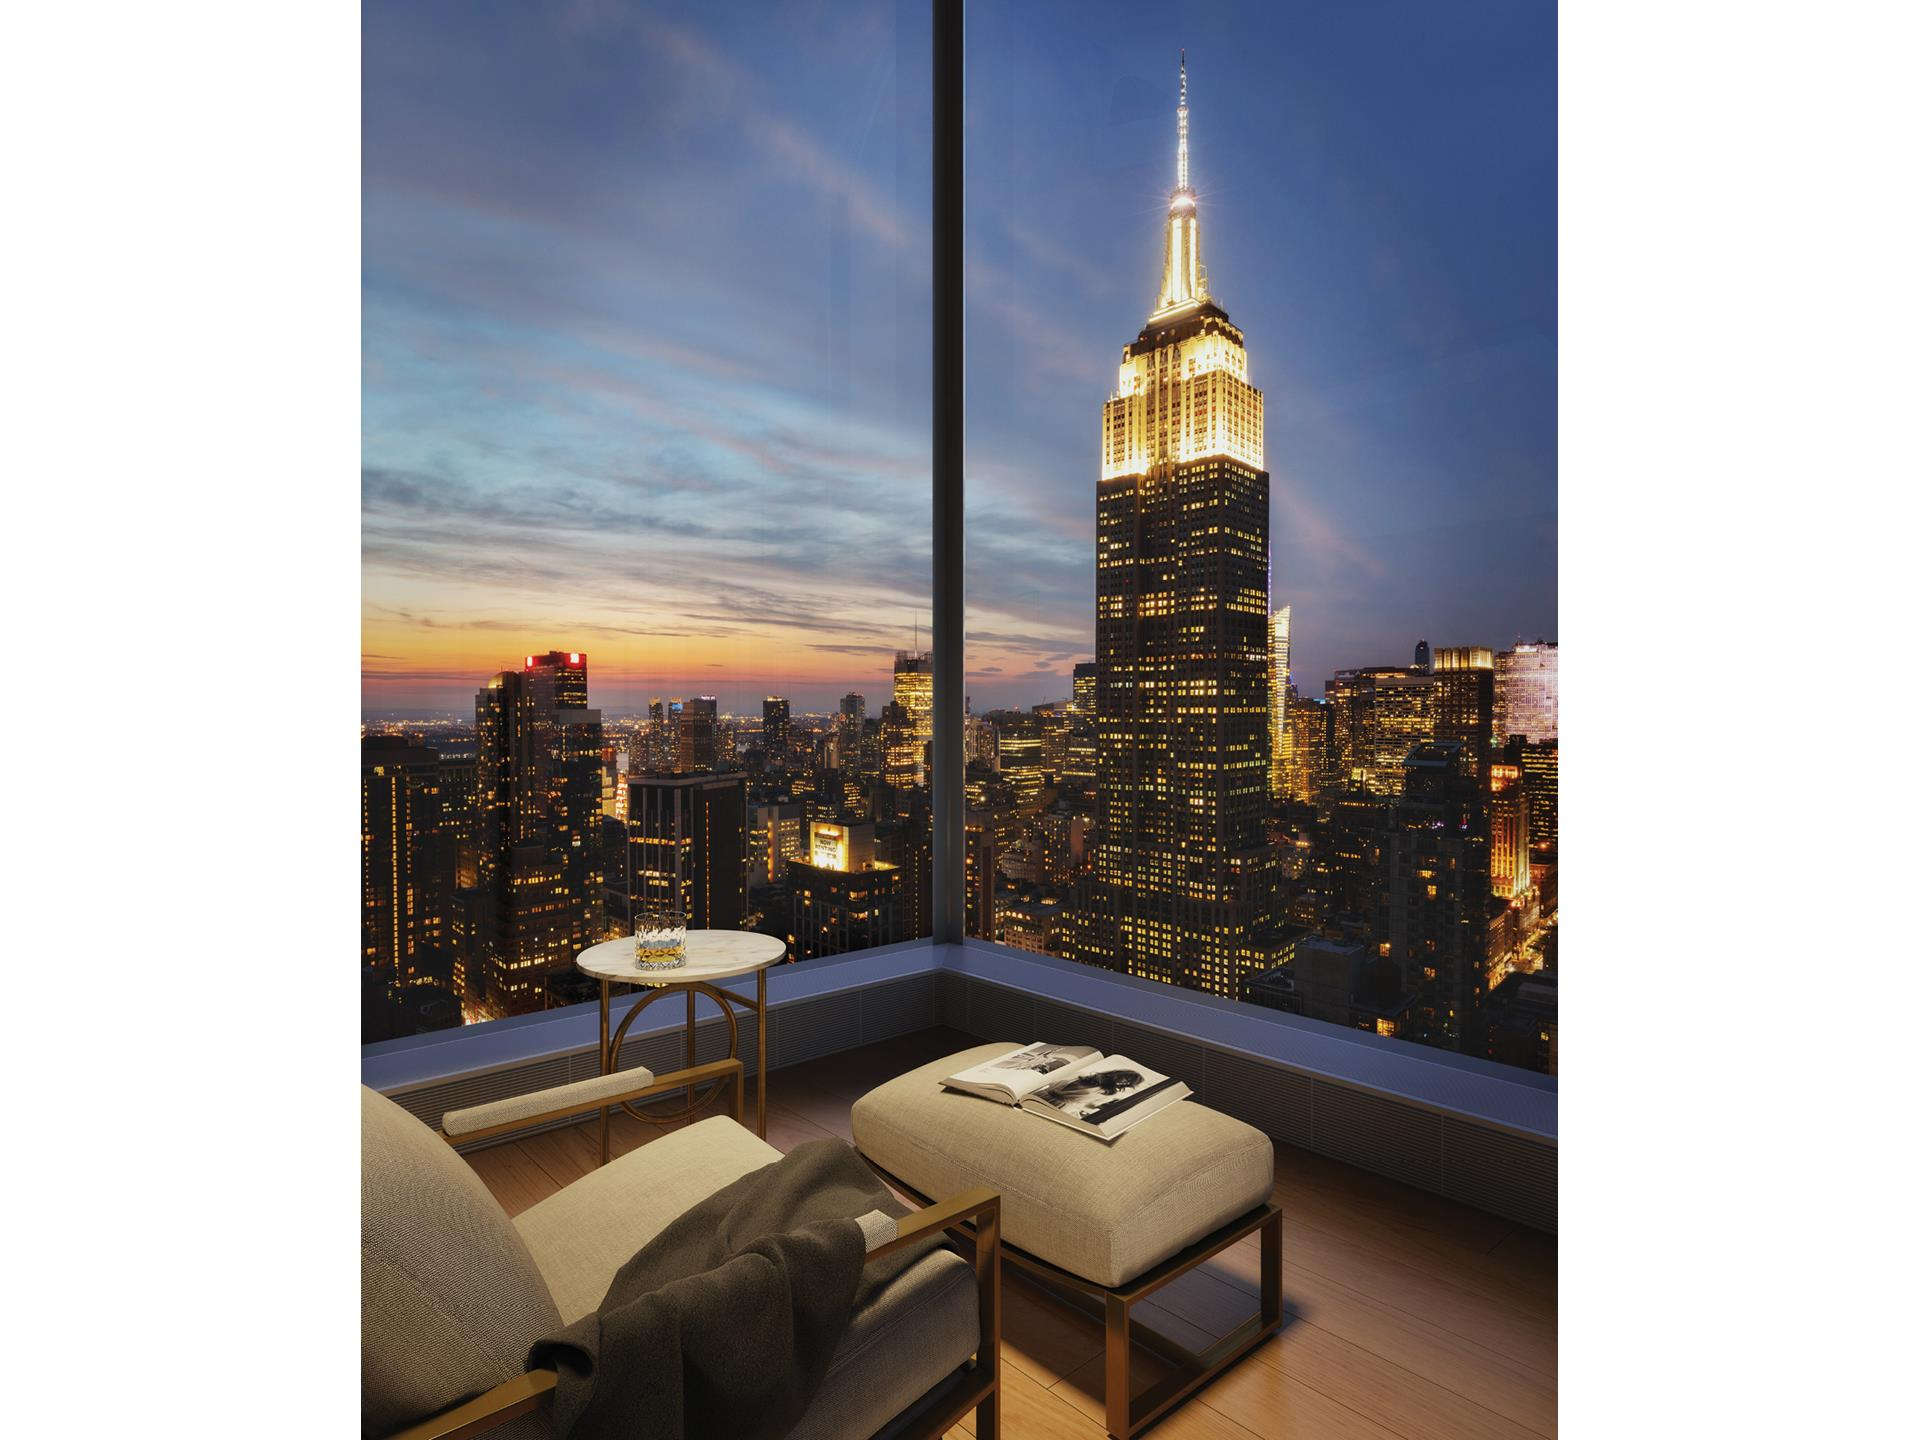 In the heart of stylish NoMad, Madison House offers unsurpassed panoramic views of New York City, where every residence has a corner window and 11-foot ceilings or higher. With architecture by Handel and interiors by Gachot, these homes start 150 feet   in the air and soar to over 800 feet. Extraordinary views are forever in style.    This 2,485 square foot three-bedroom, three and a half-bath residence opens into an elegant entry foyer, leading to a living and dining room encased with 10-foot tall windows with North, East and West views. Gachot-designed custom rift-cut cabinetry accentuates   the open kitchen, with a honed Calacatta Borghini marble waterfall island and backsplash. Gaggenau appliances including a cooktop, combi-steam oven, convection double oven, refrigerator, and wine refrigerator outfit the kitchen. White oak 5-inch plank floors   and 9-foot solid walnut doors are featured throughout the residence.    A private vestibule with a gracious walk-in-closet separates the living area from the master bedroom suite, creating a sense of privacy. The en suite master bath offers honed Bianco Dolomiti marble on the walls as well as floors, which are heated, with a custom   Gachot-designed vanity and mirror. Platinum matte Dornbracht fixtures accentuate the vanity, Kaldewei tubs and Durivit toilet. A striking powder room with honed Calacatta Nuevo and Absolute black marble walls complemented by a Gachot-designed custom vanity   with Dornbracht fixtures is situated thoughtfully off the entry foyer.    Madison House offers a double-height attended lobby and 30,000 square feet of amenities. These include a spa with 75-foot lap pool, cold plunge, hot tub, steam room, sauna, and treatment room. A 2nd floor 2,800 square foot roof garden. 5th floor double height   Gachot-designed private lounge and bar, 14-seat private dining room with a demonstration and catering kitchen, conference room, card room and reading room. State-of-the-art exercise room, separate yoga room,